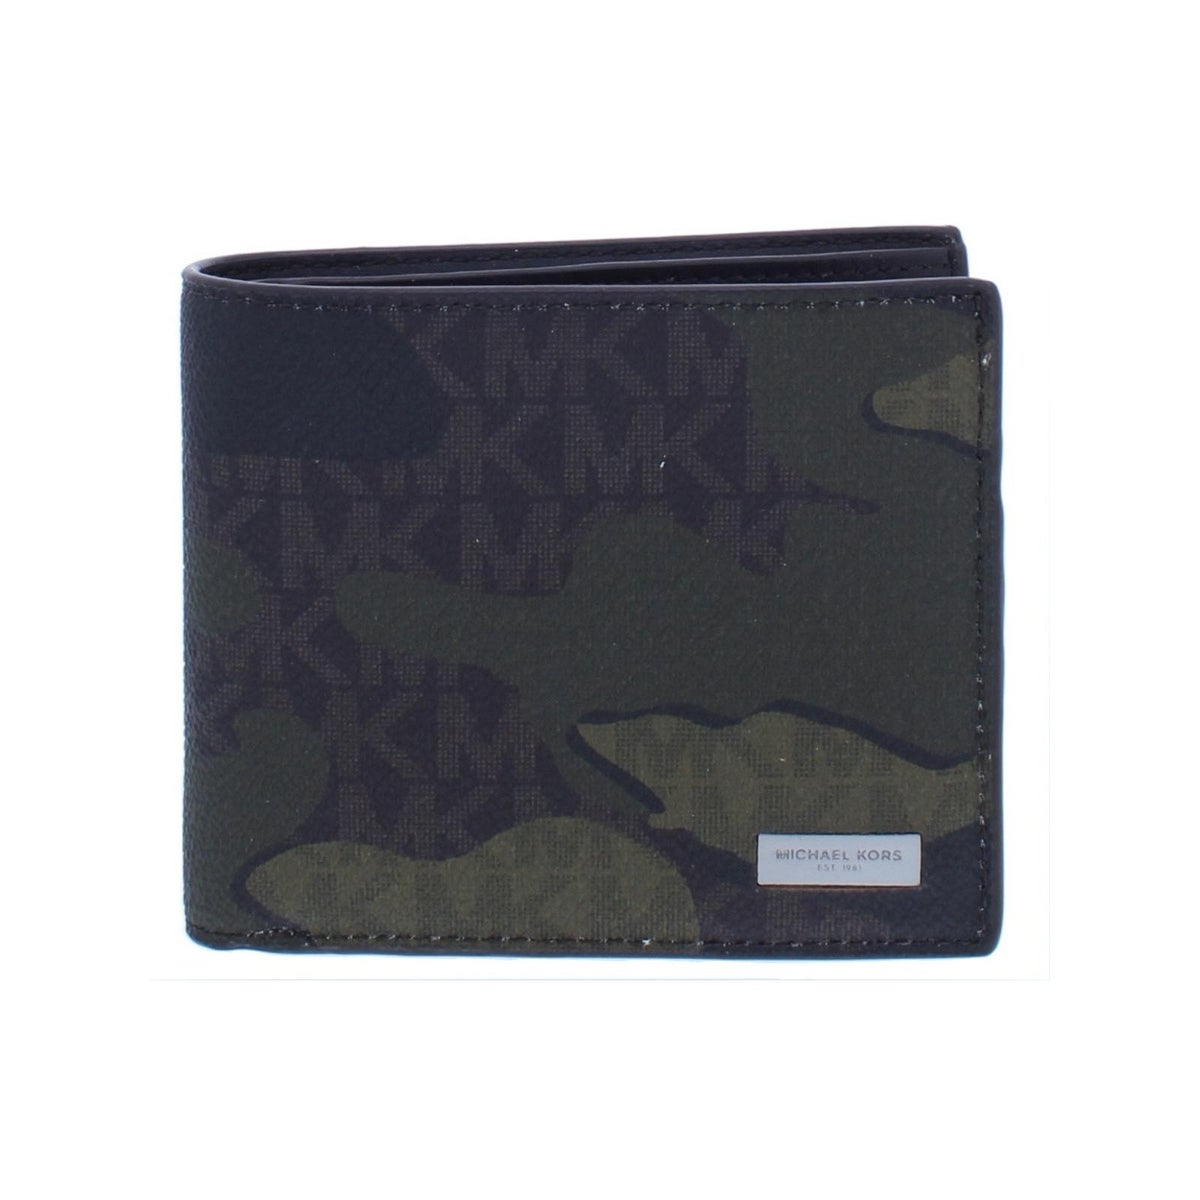 1416c01d9308 Shop Michael Kors Mens Jet Set Bifold Wallet Faux Leather Camouflage - O S  - Free Shipping Today - Overstock - 26566306